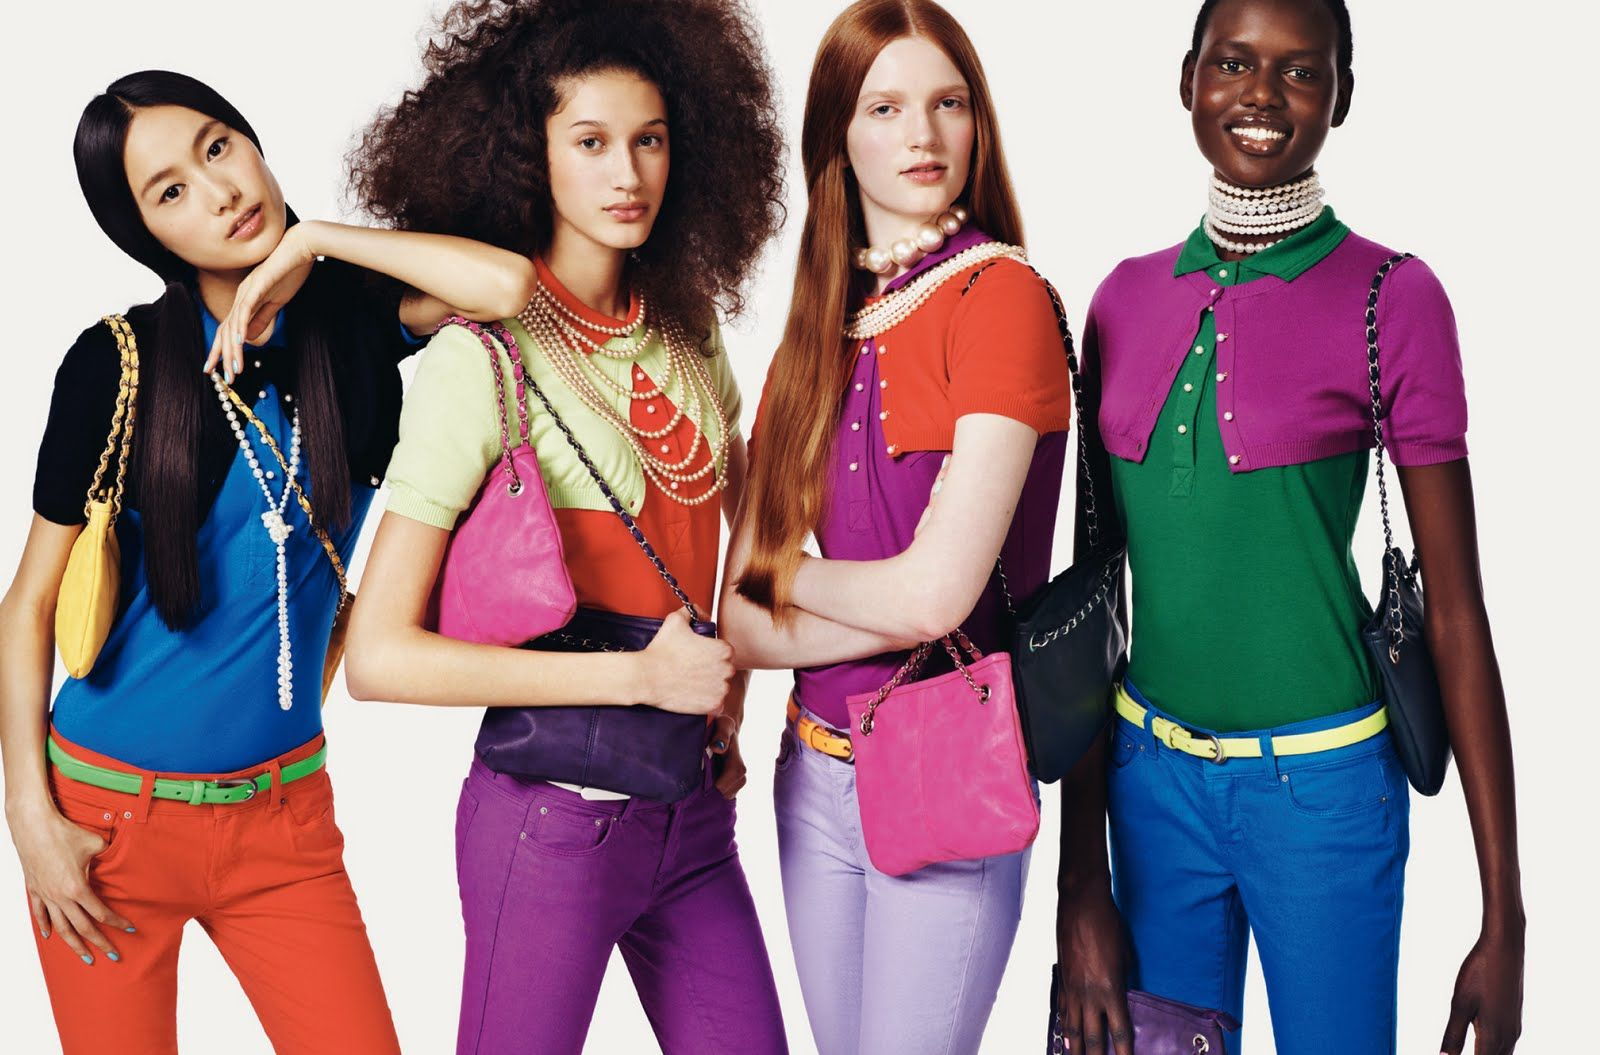 7be84226bb5 United Colors of Benetton ad: because I was always wearing their ...